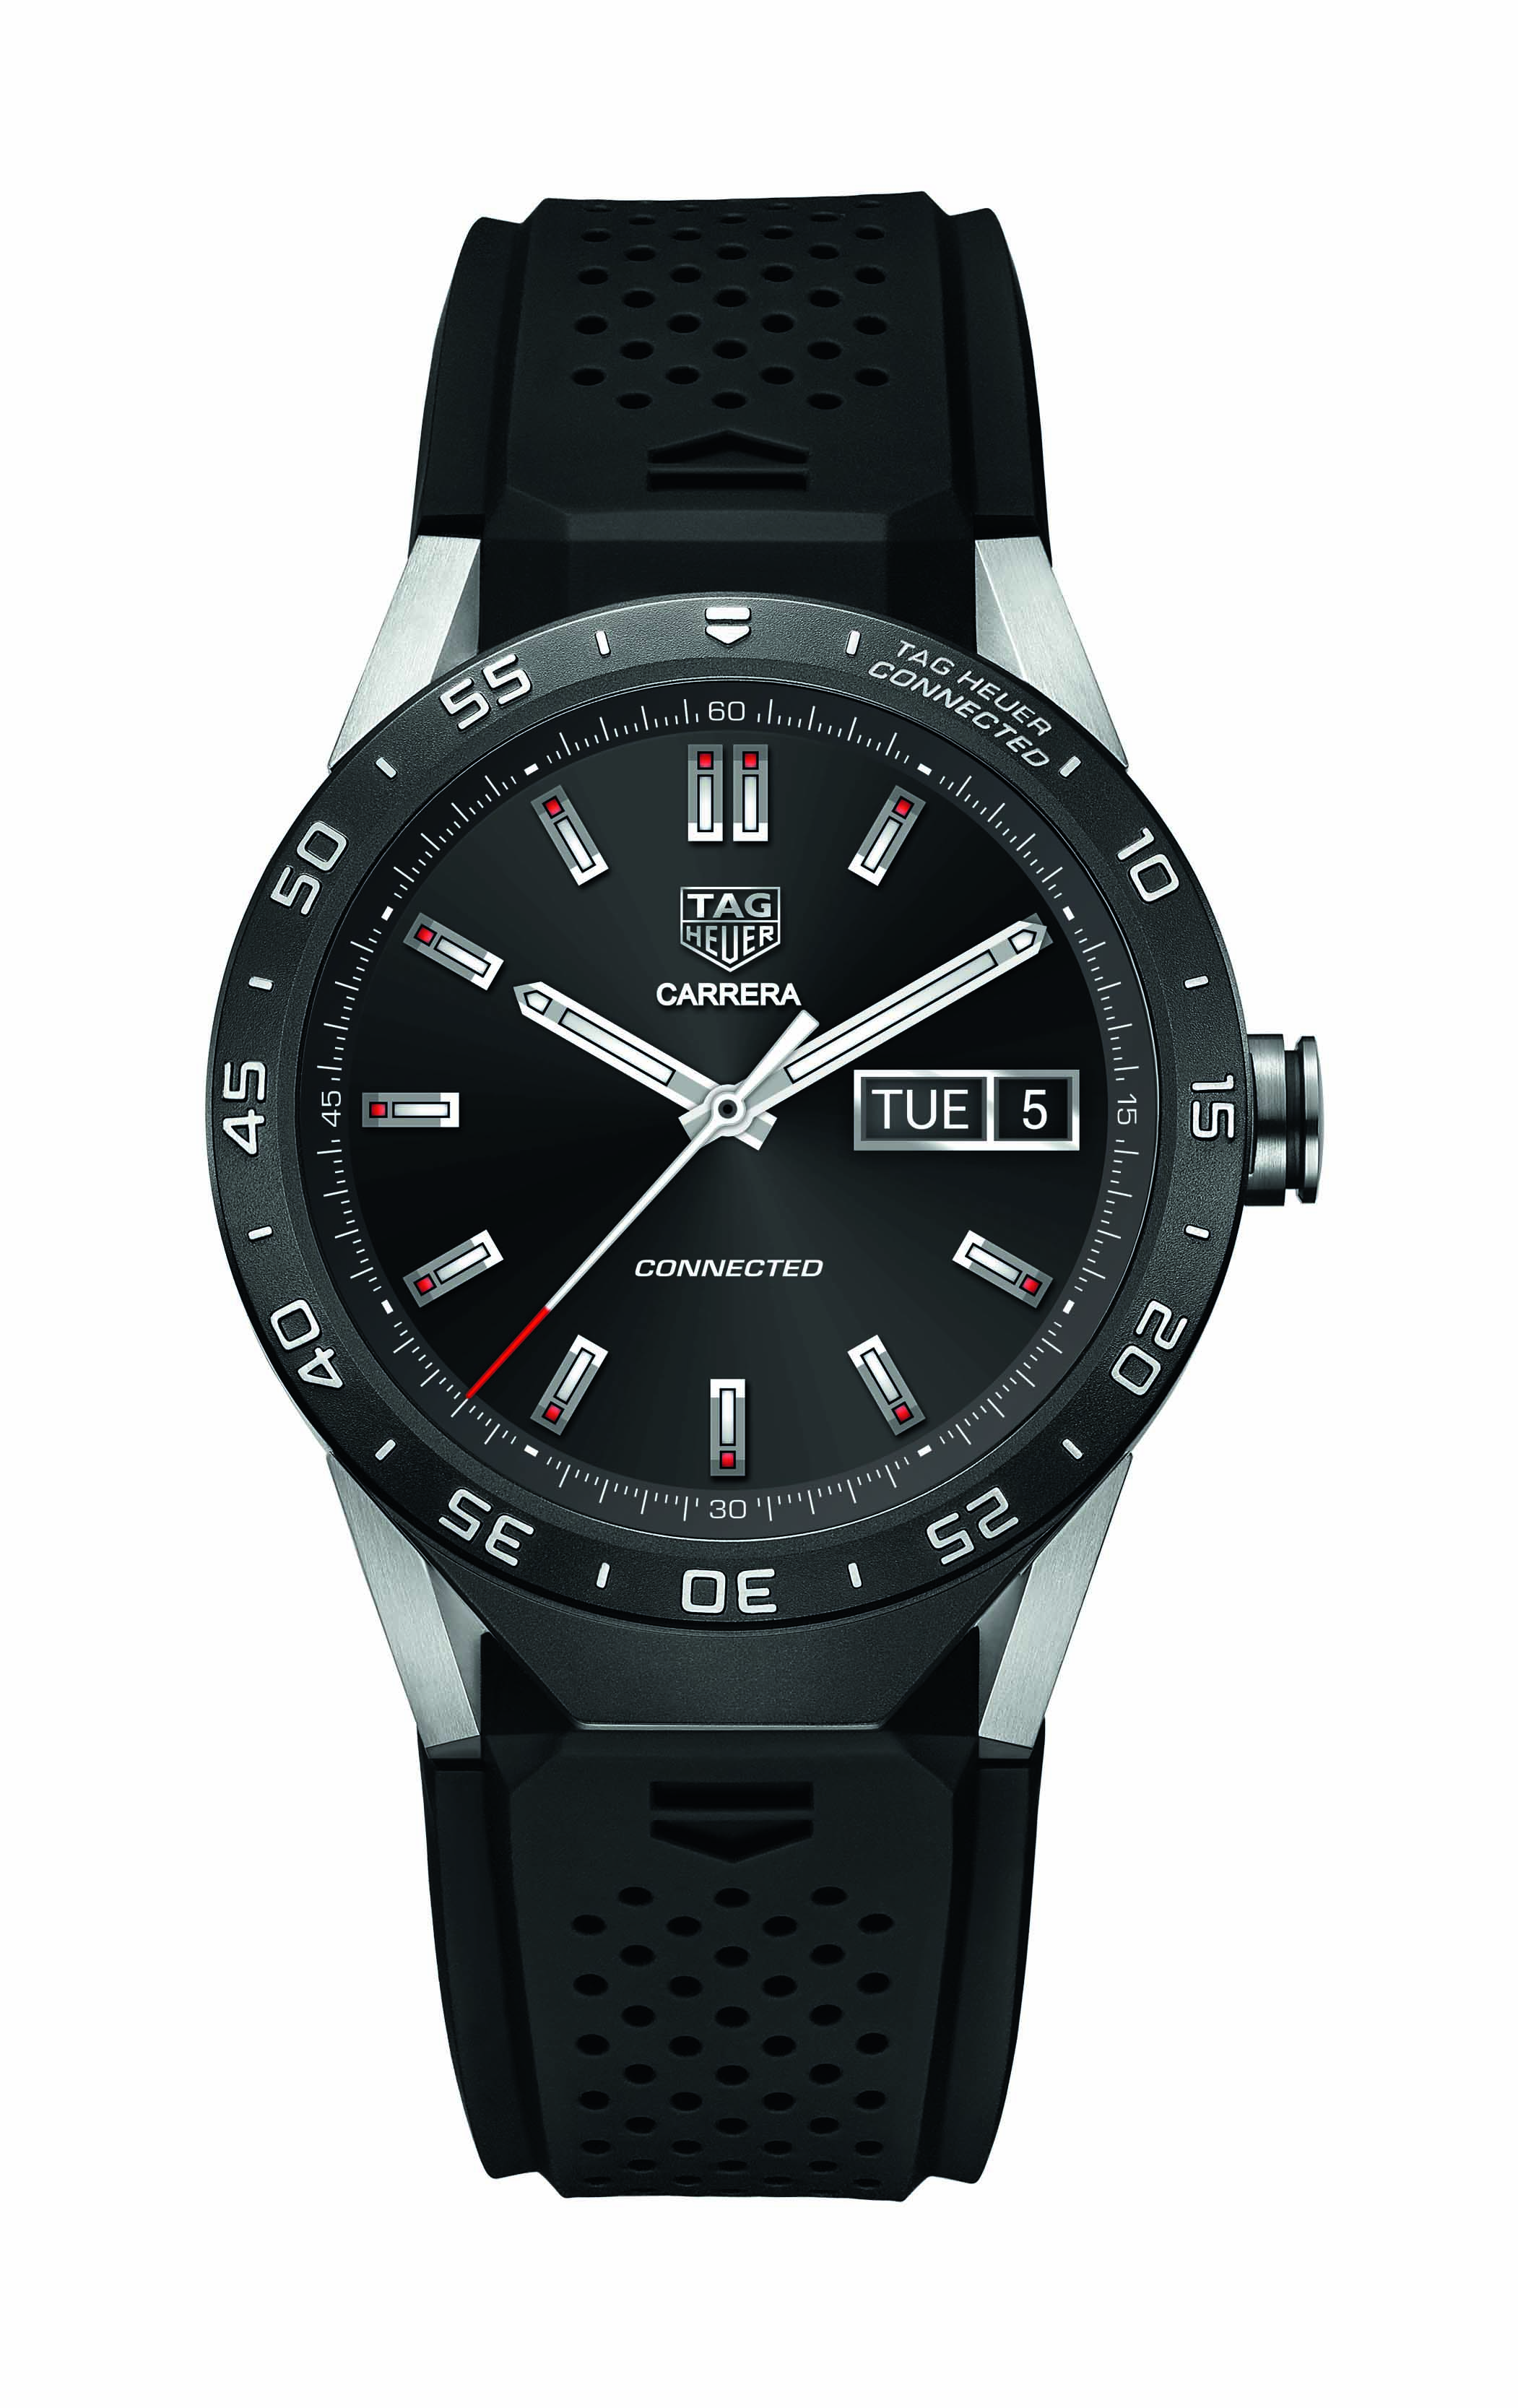 SAR8A80.FT6045 - BLACK - DIAL ON 2015